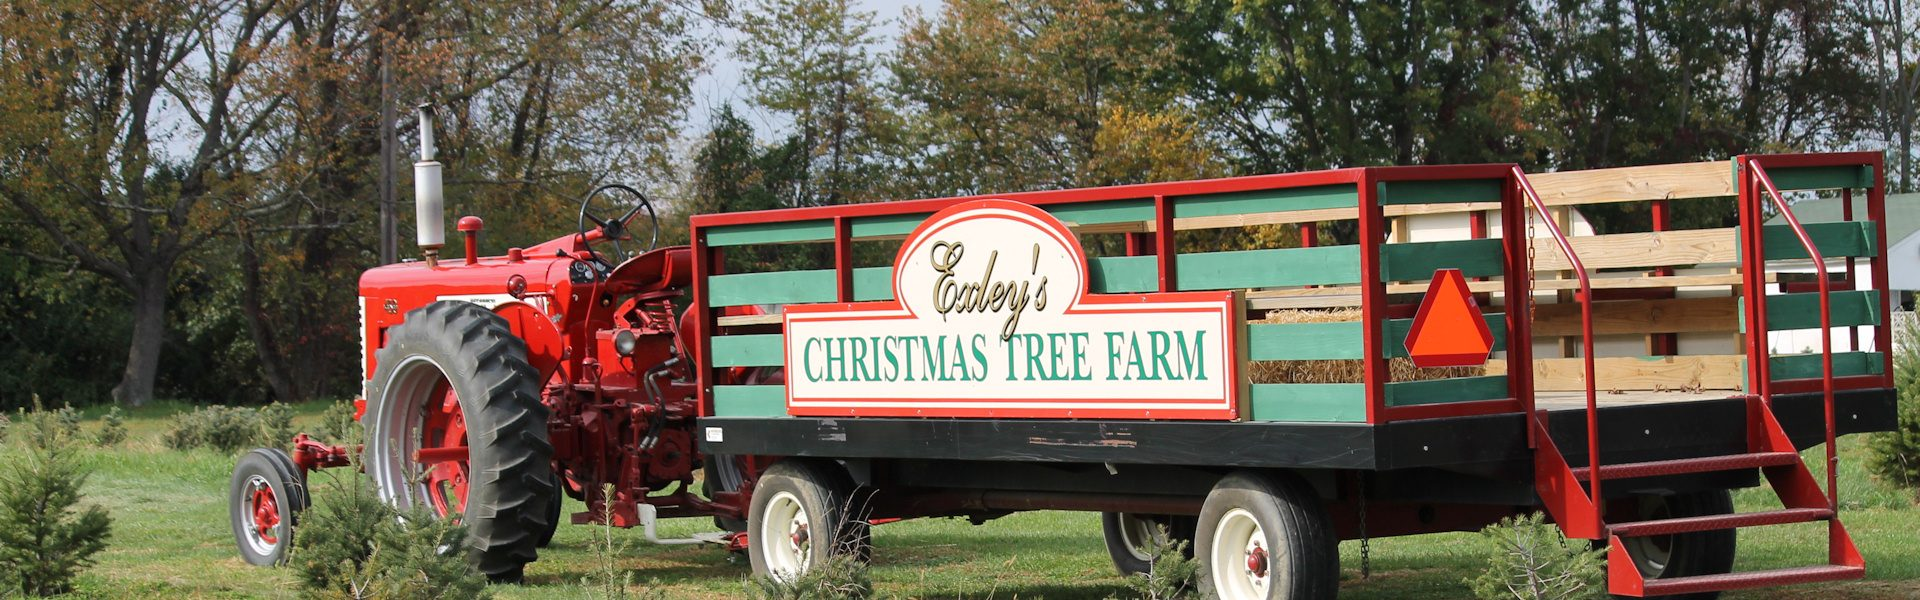 Exley\'s Christmas Tree Farms